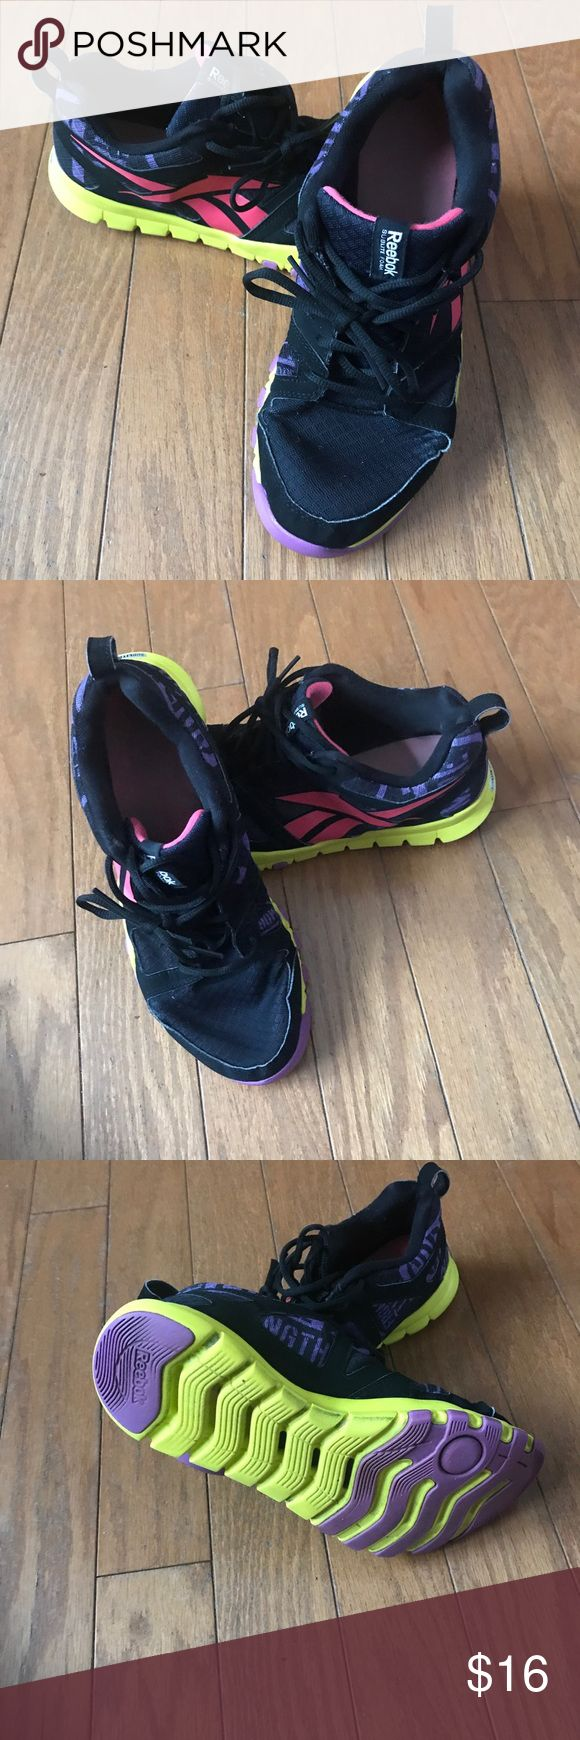 Reebok Women's Tennis Shoes 👟 In fair/used condition. No overall major wear but are used. Willing to negotiate price😊 Reebok Shoes Sneakers